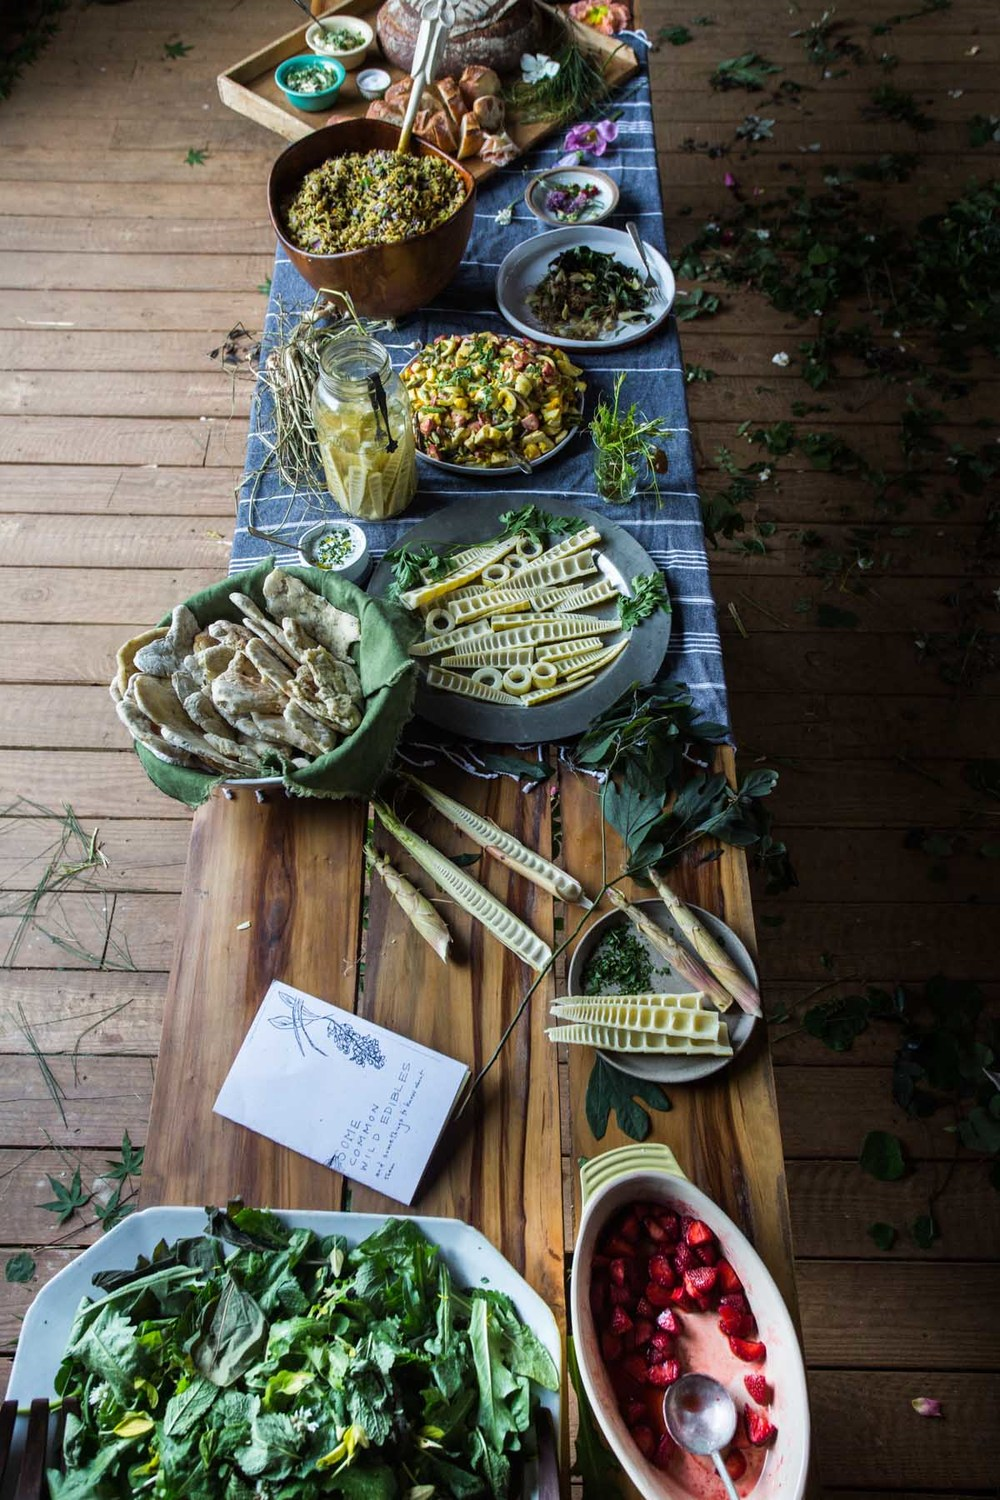 RA_spring beauty day_food_wild food-201604306861.jpg